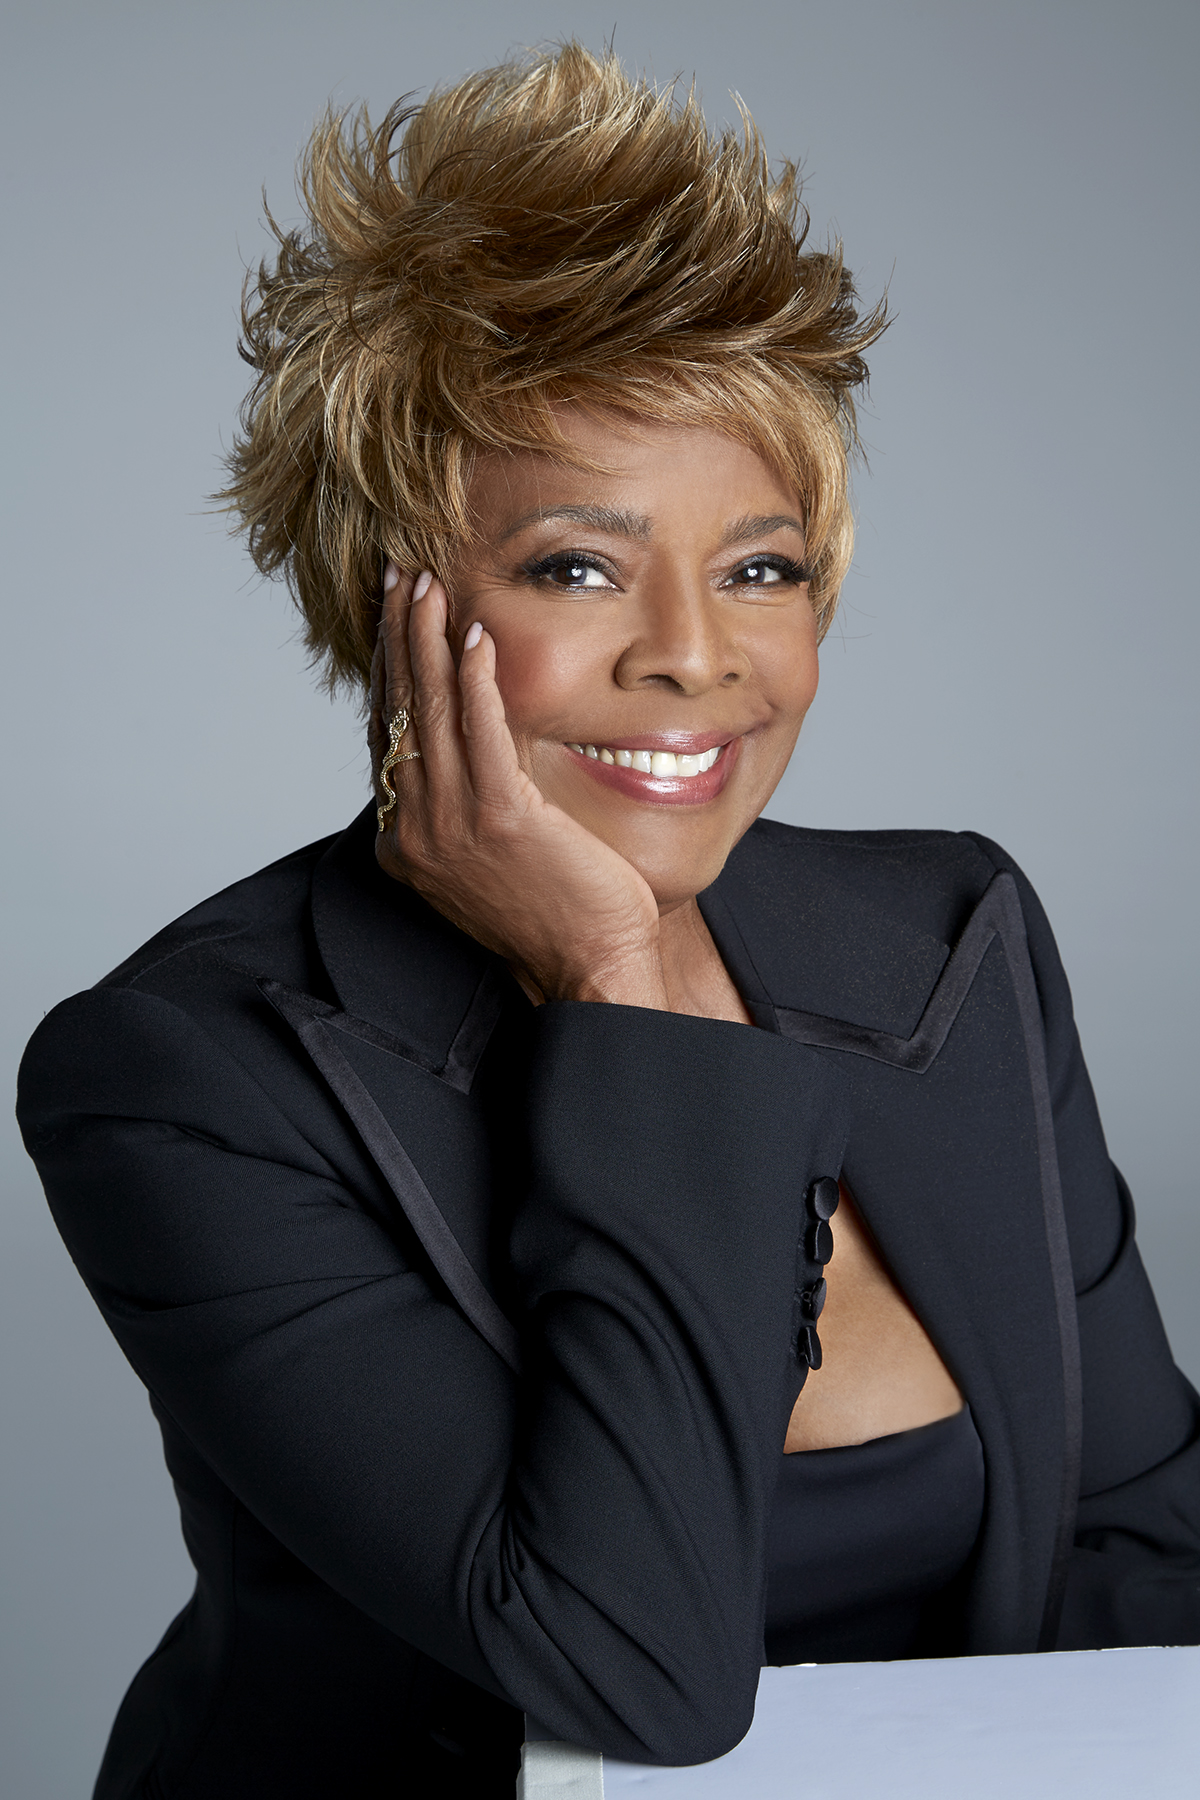 Thelma Houston talks new music, shows in 2020, and digital age